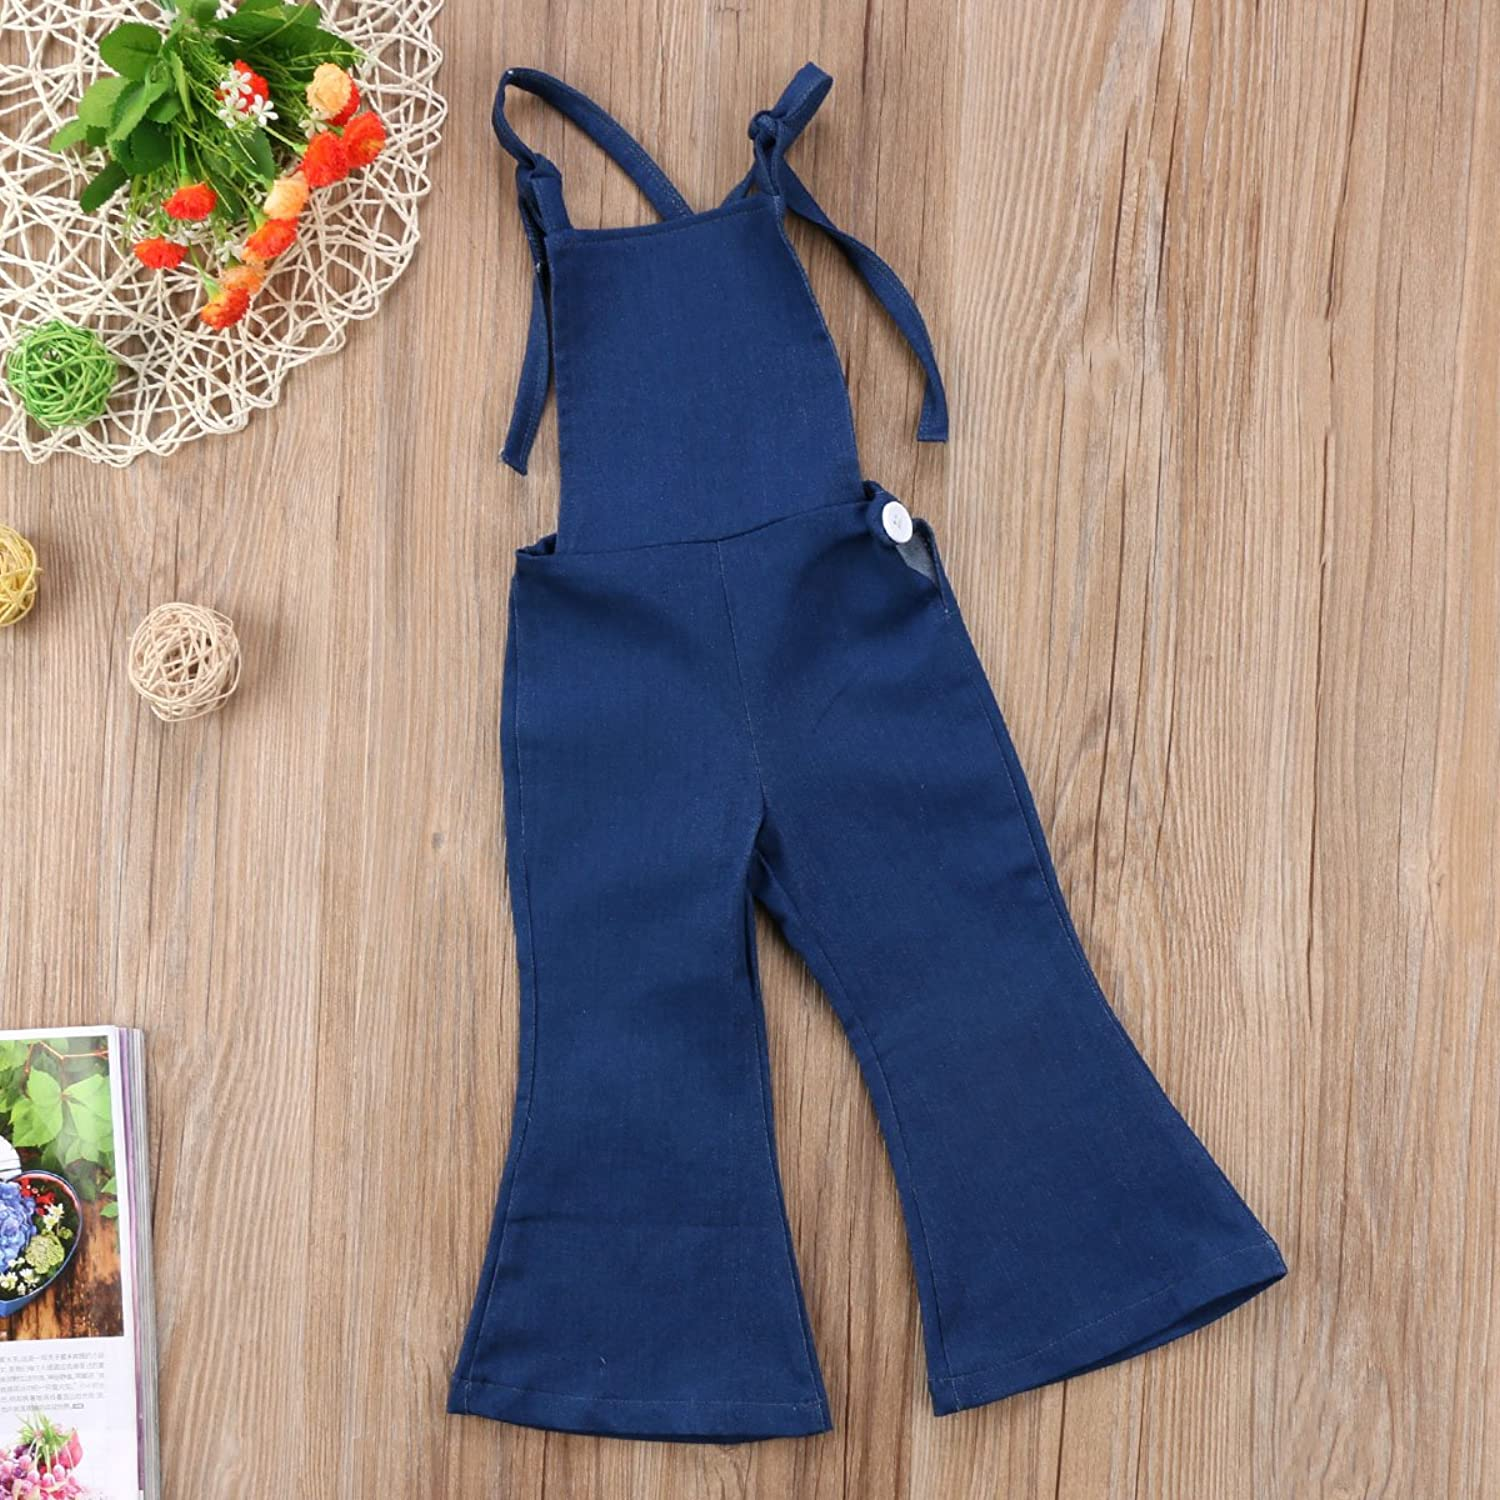 1940s Children's Clothing: Girls, Boys, Baby, Toddler Pudcoco Baby Girls Little Kids Suspender Overall Flared Denim Jeans Jumpsuit Bell Elastic Blue Pants $11.99 AT vintagedancer.com